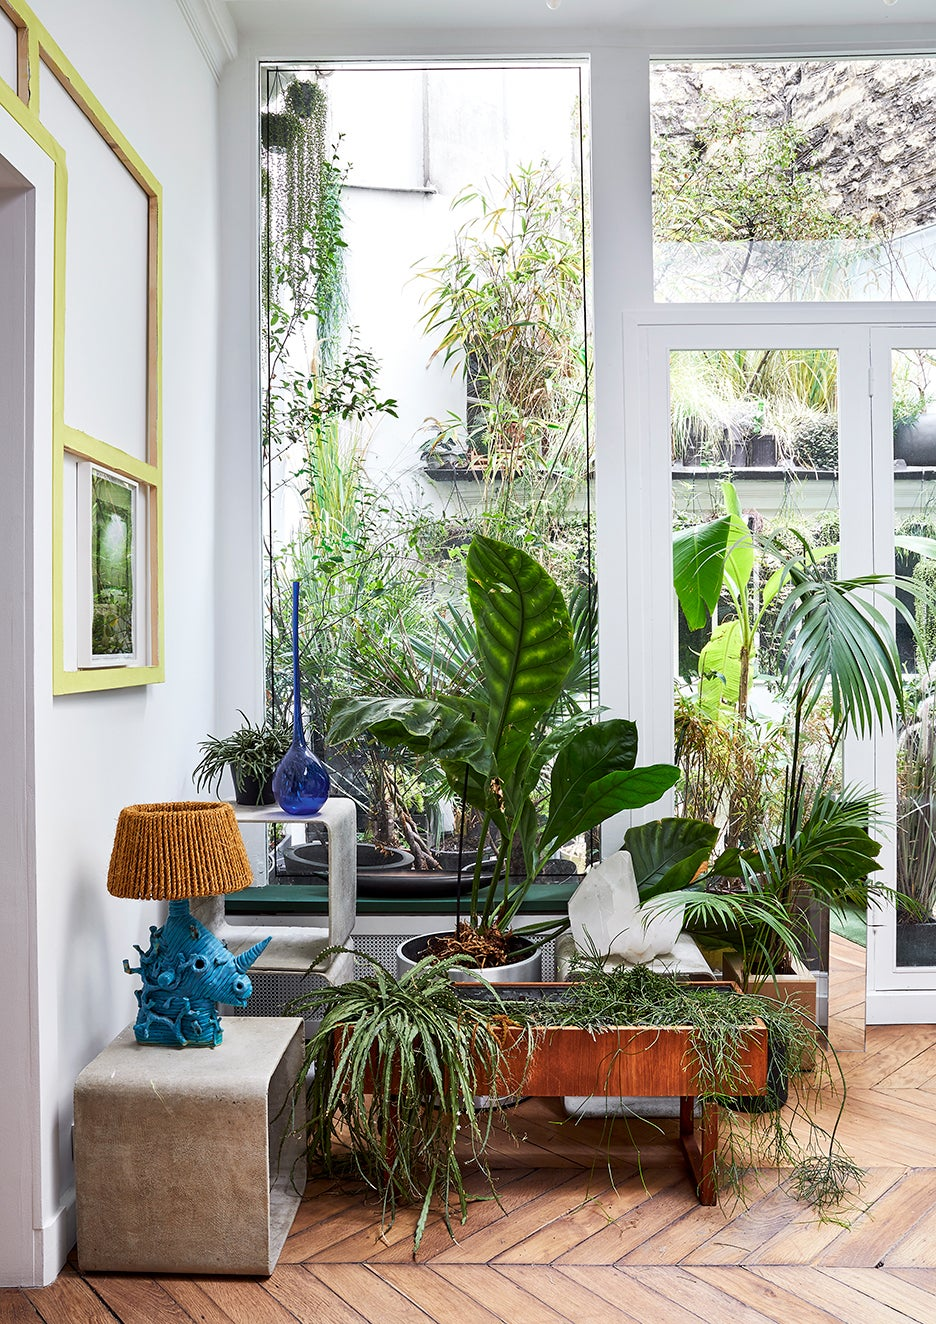 Living room with plants and floor-to-ceiling windows